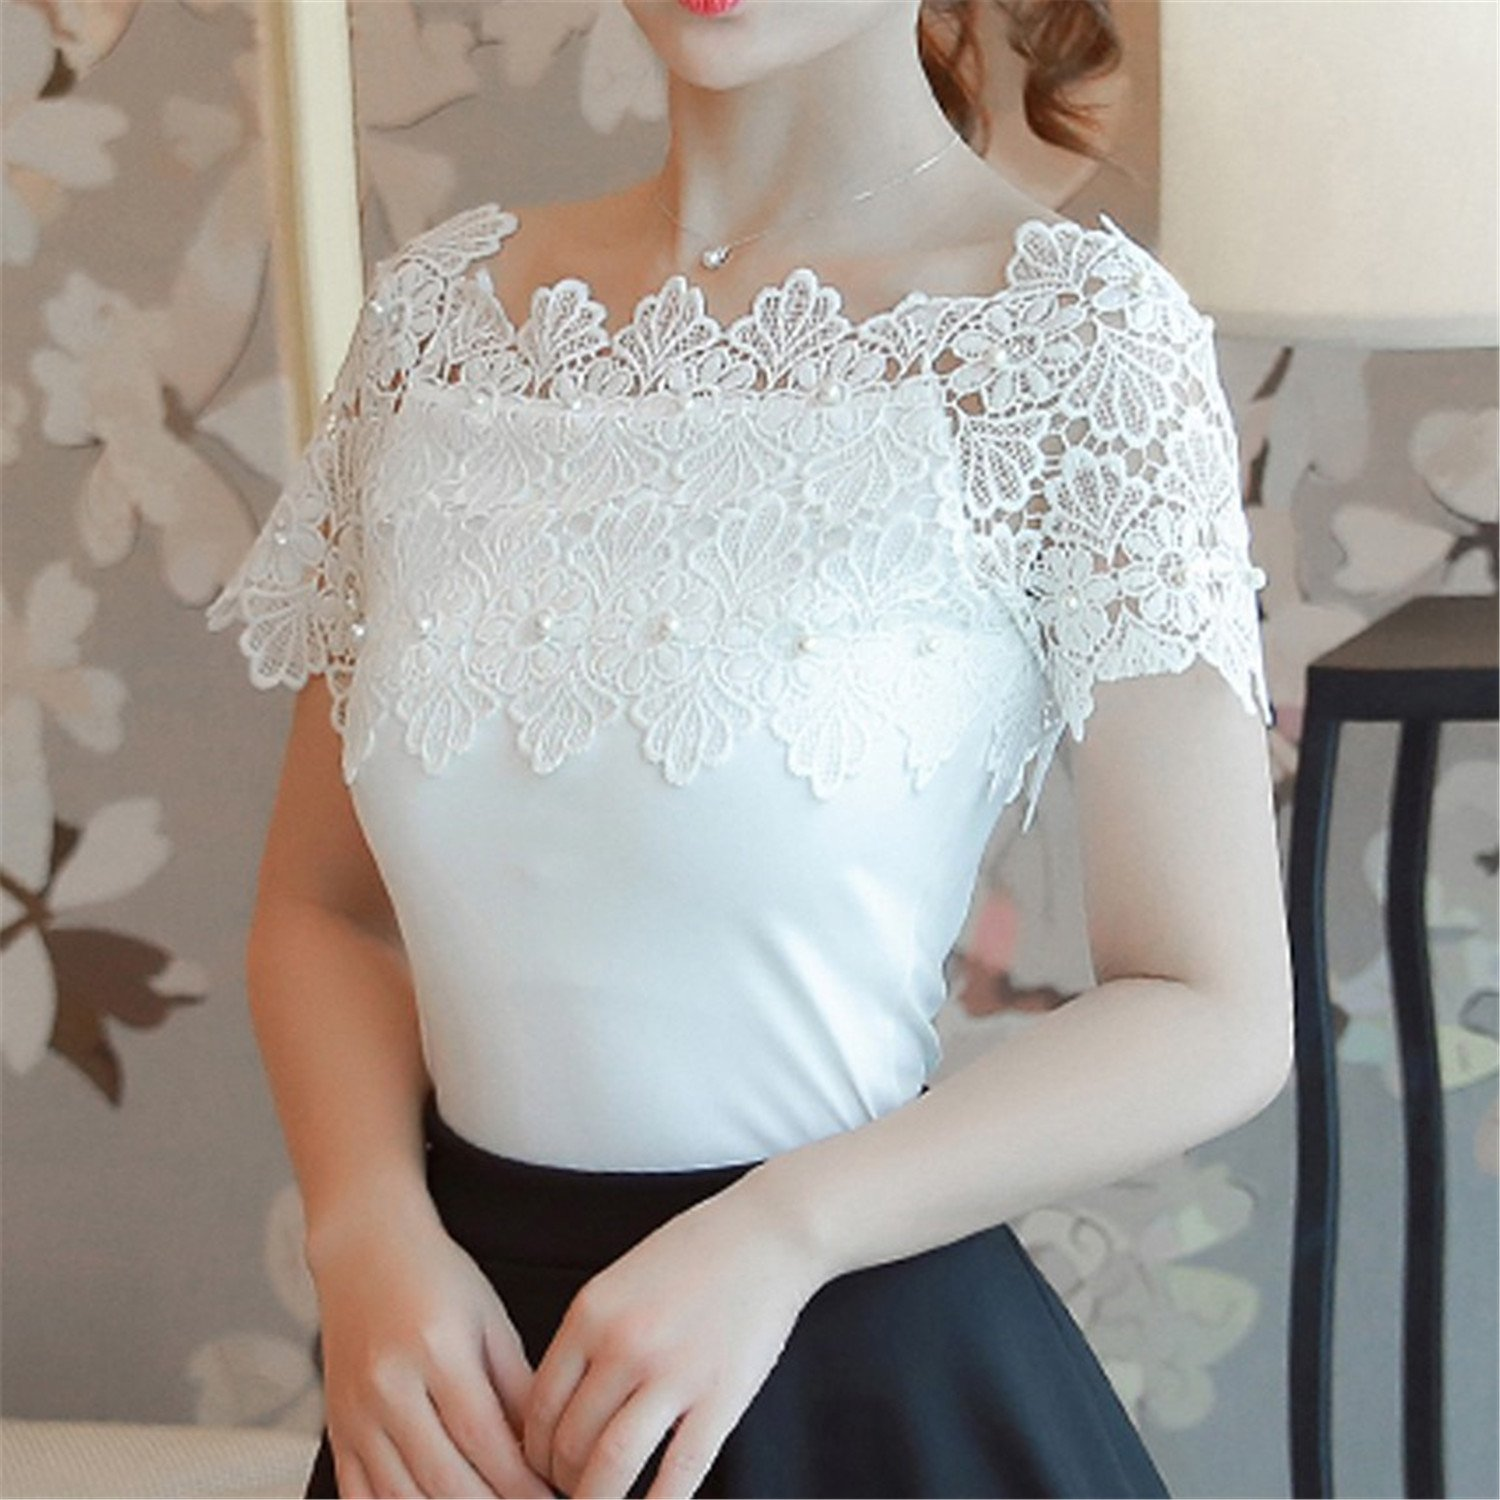 OUXIANGJU Women Shirts White Lace Beading Tops Lady Renda Patchwork Sexy Hollow Out Blouse at Amazon Womens Clothing store: